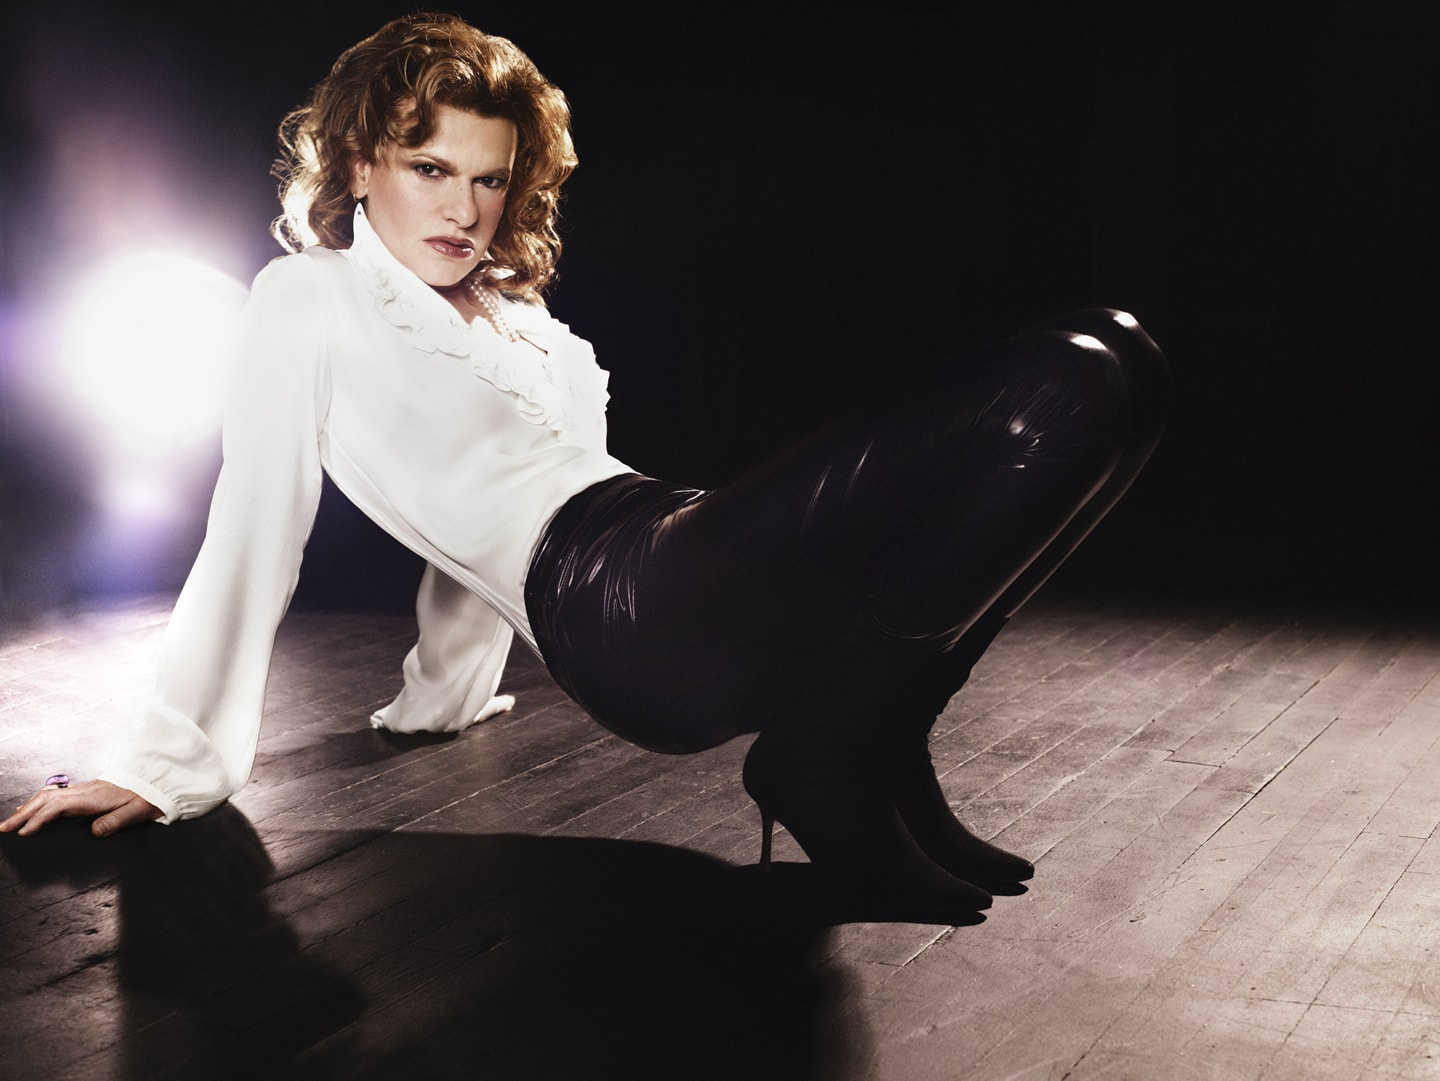 Sandra Bernhard Full hd wallpapers